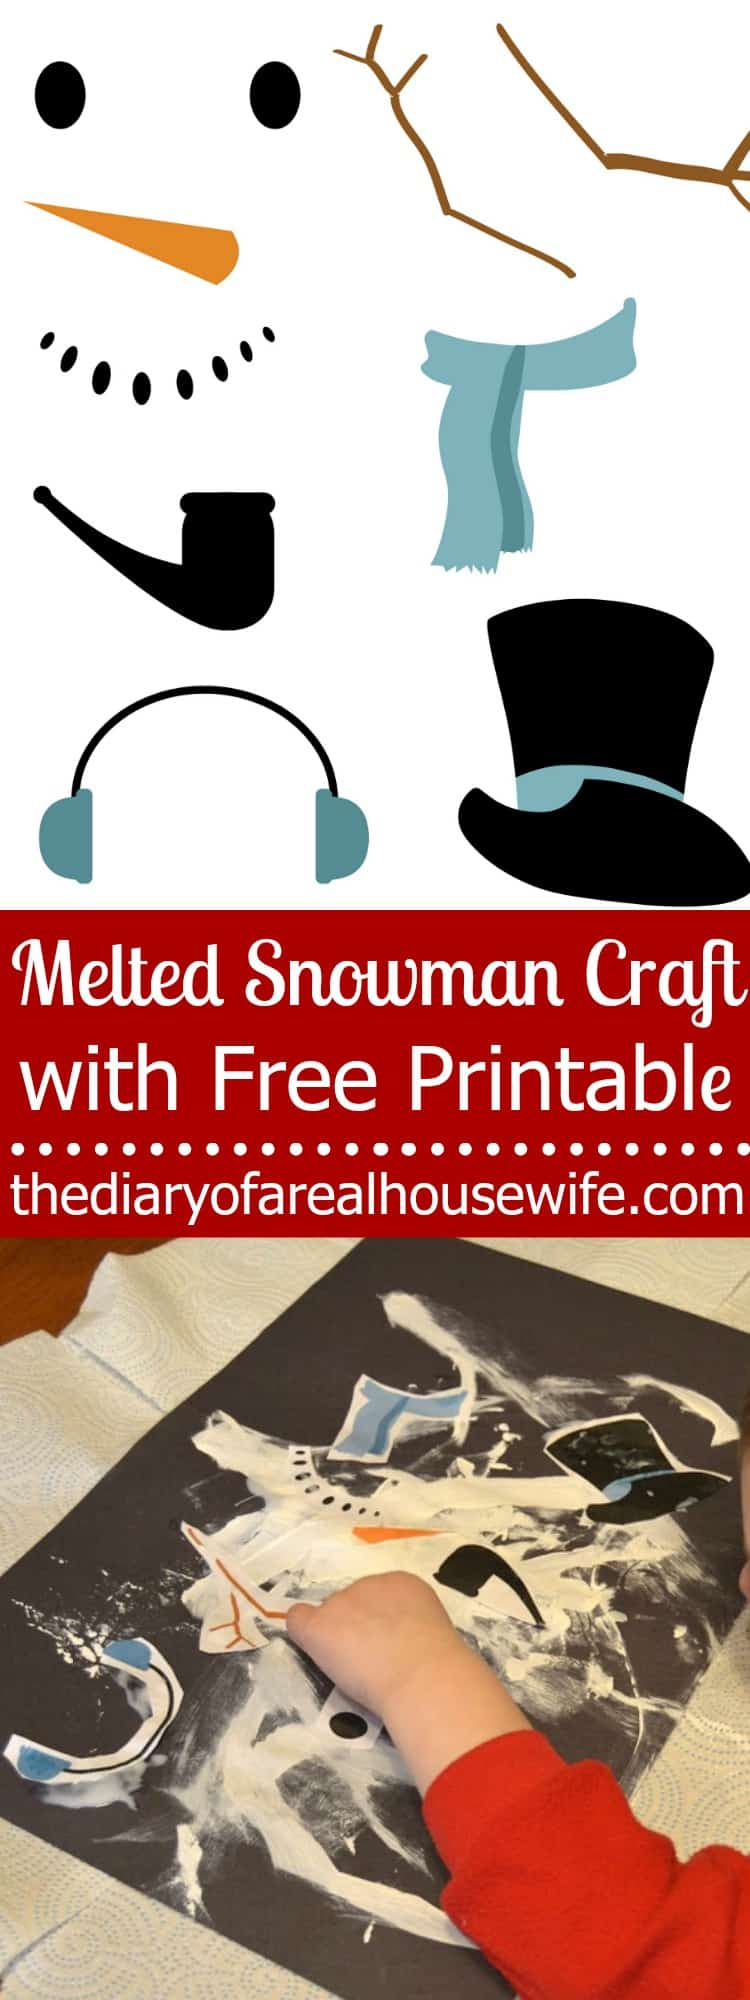 melted-snowman-craft-with-free-printable